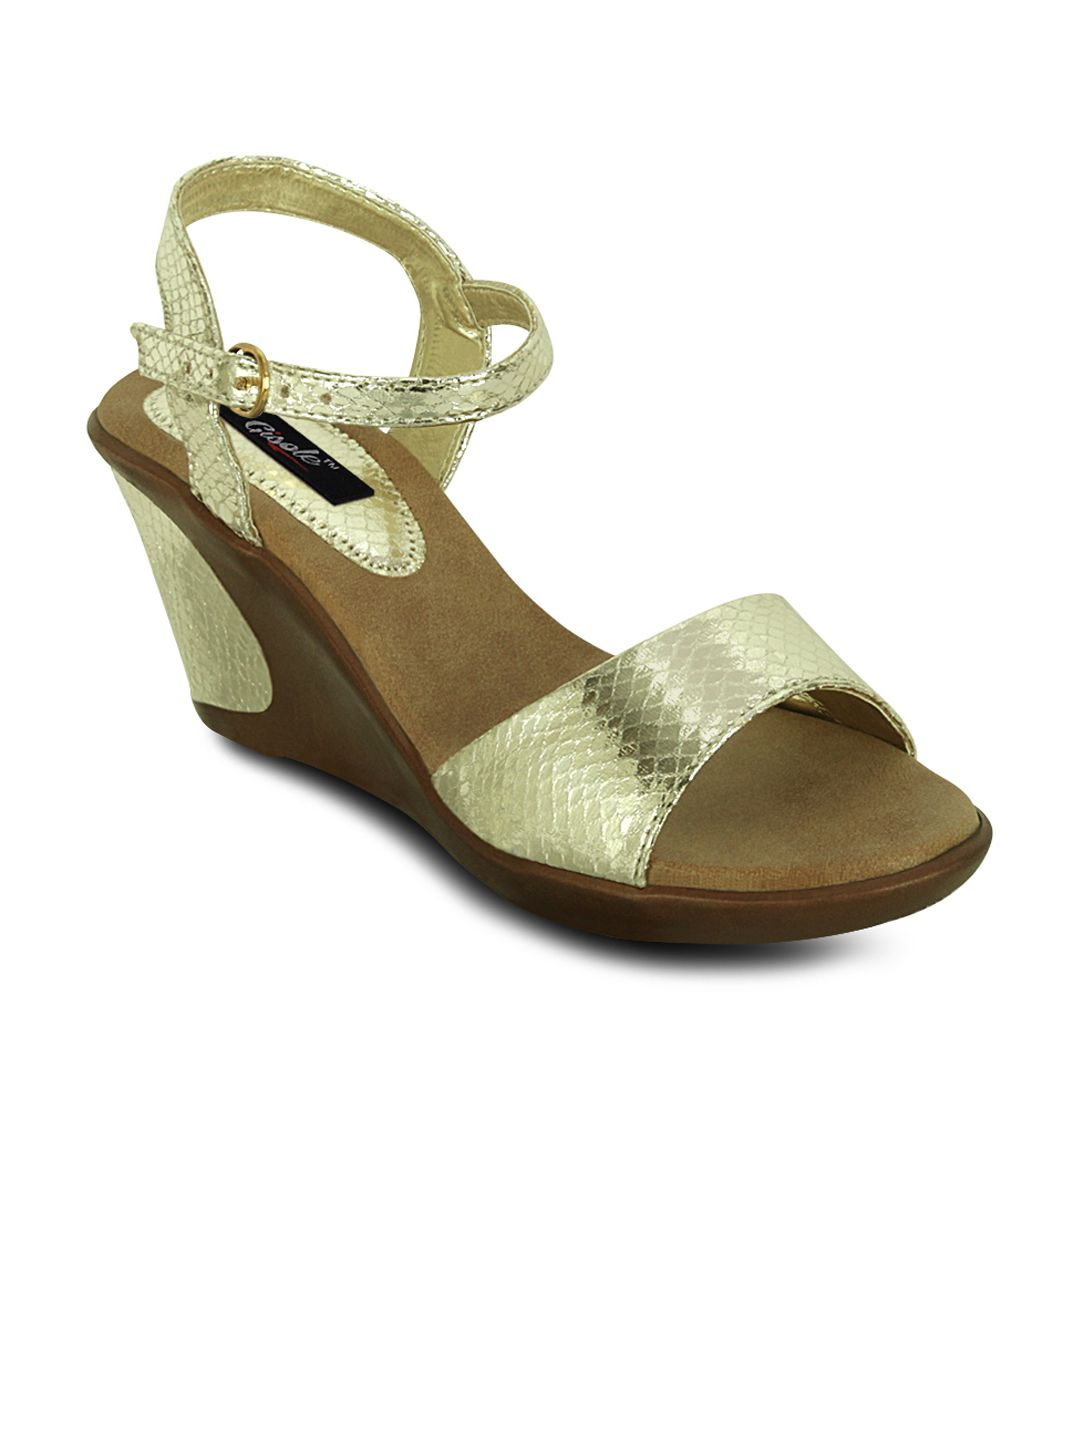 Gisole Gold Wedges Heels